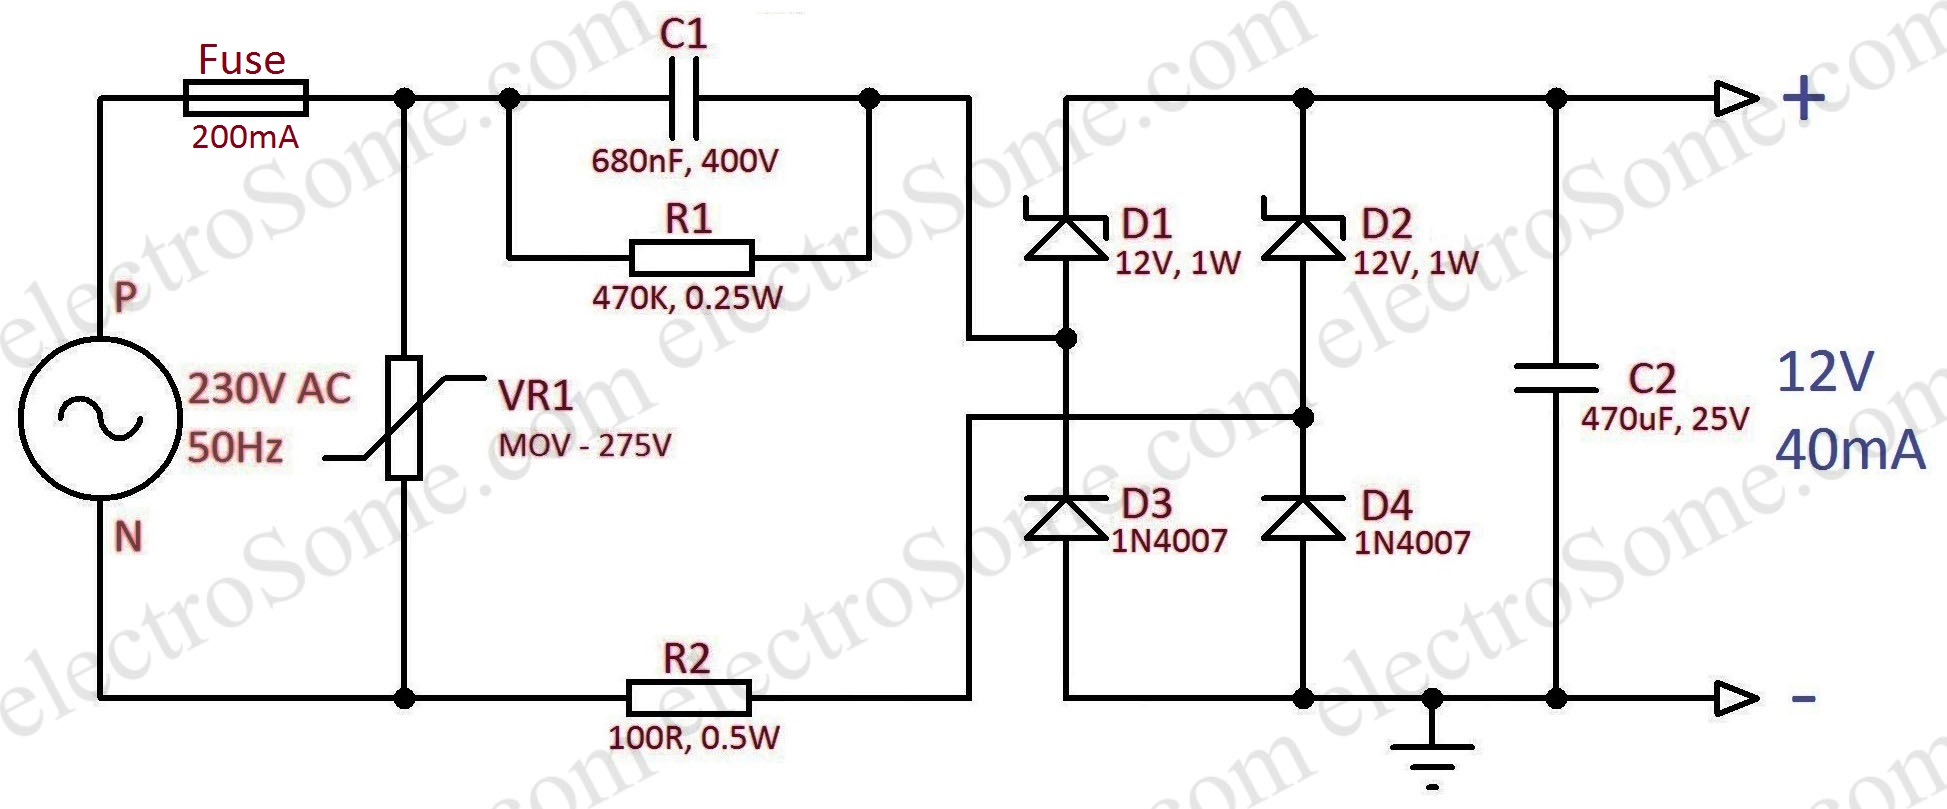 Circuit Diagram. Transformerless Capacitor Power Supply 12V 40mA